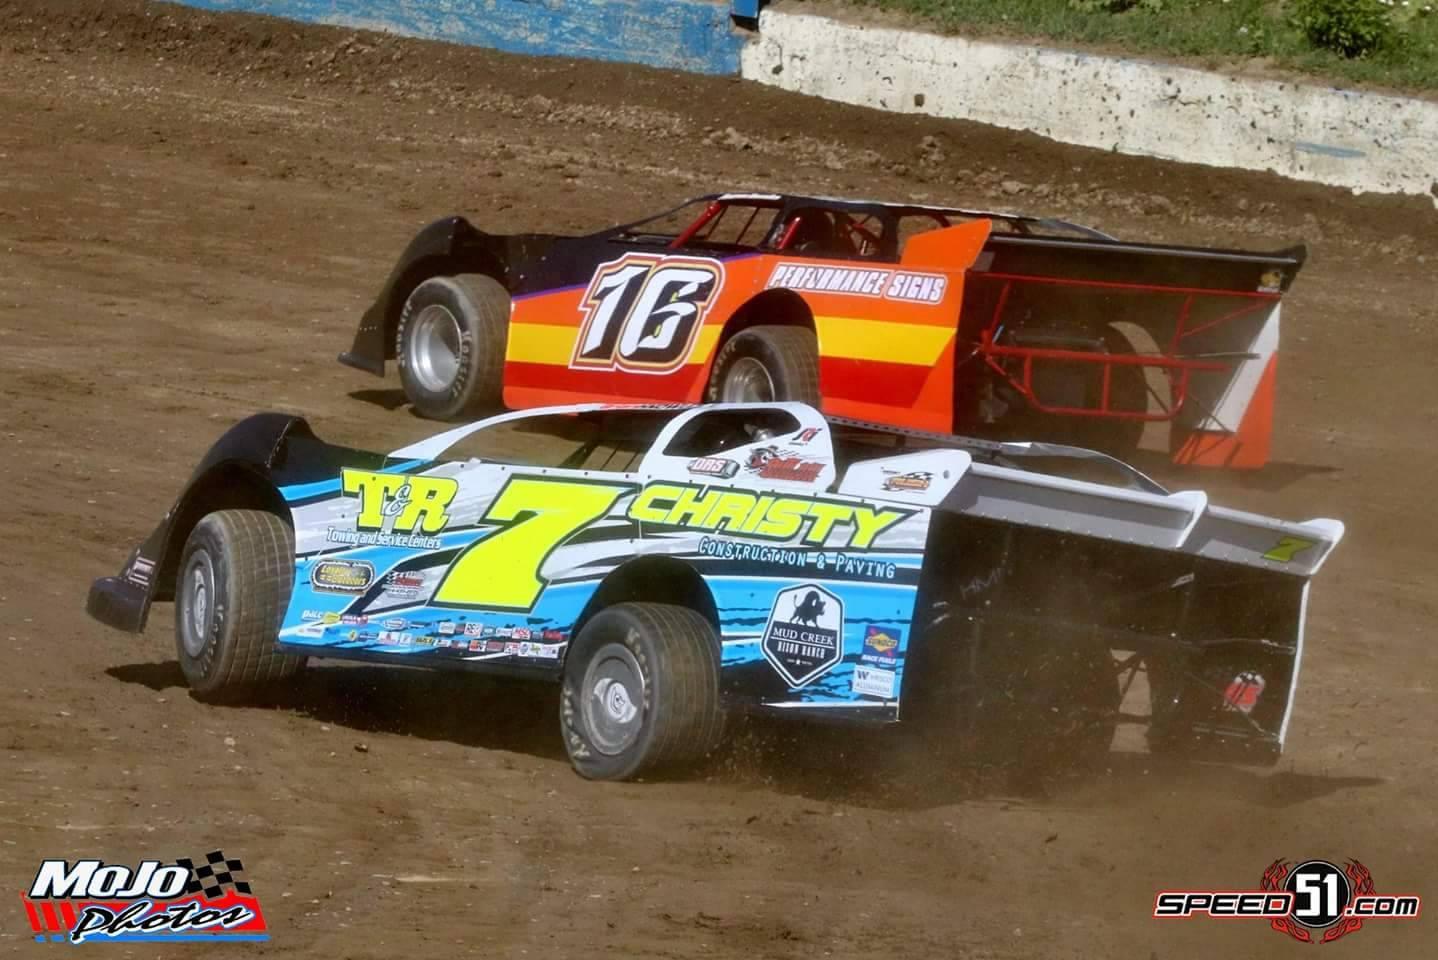 Aaron in the Late Model